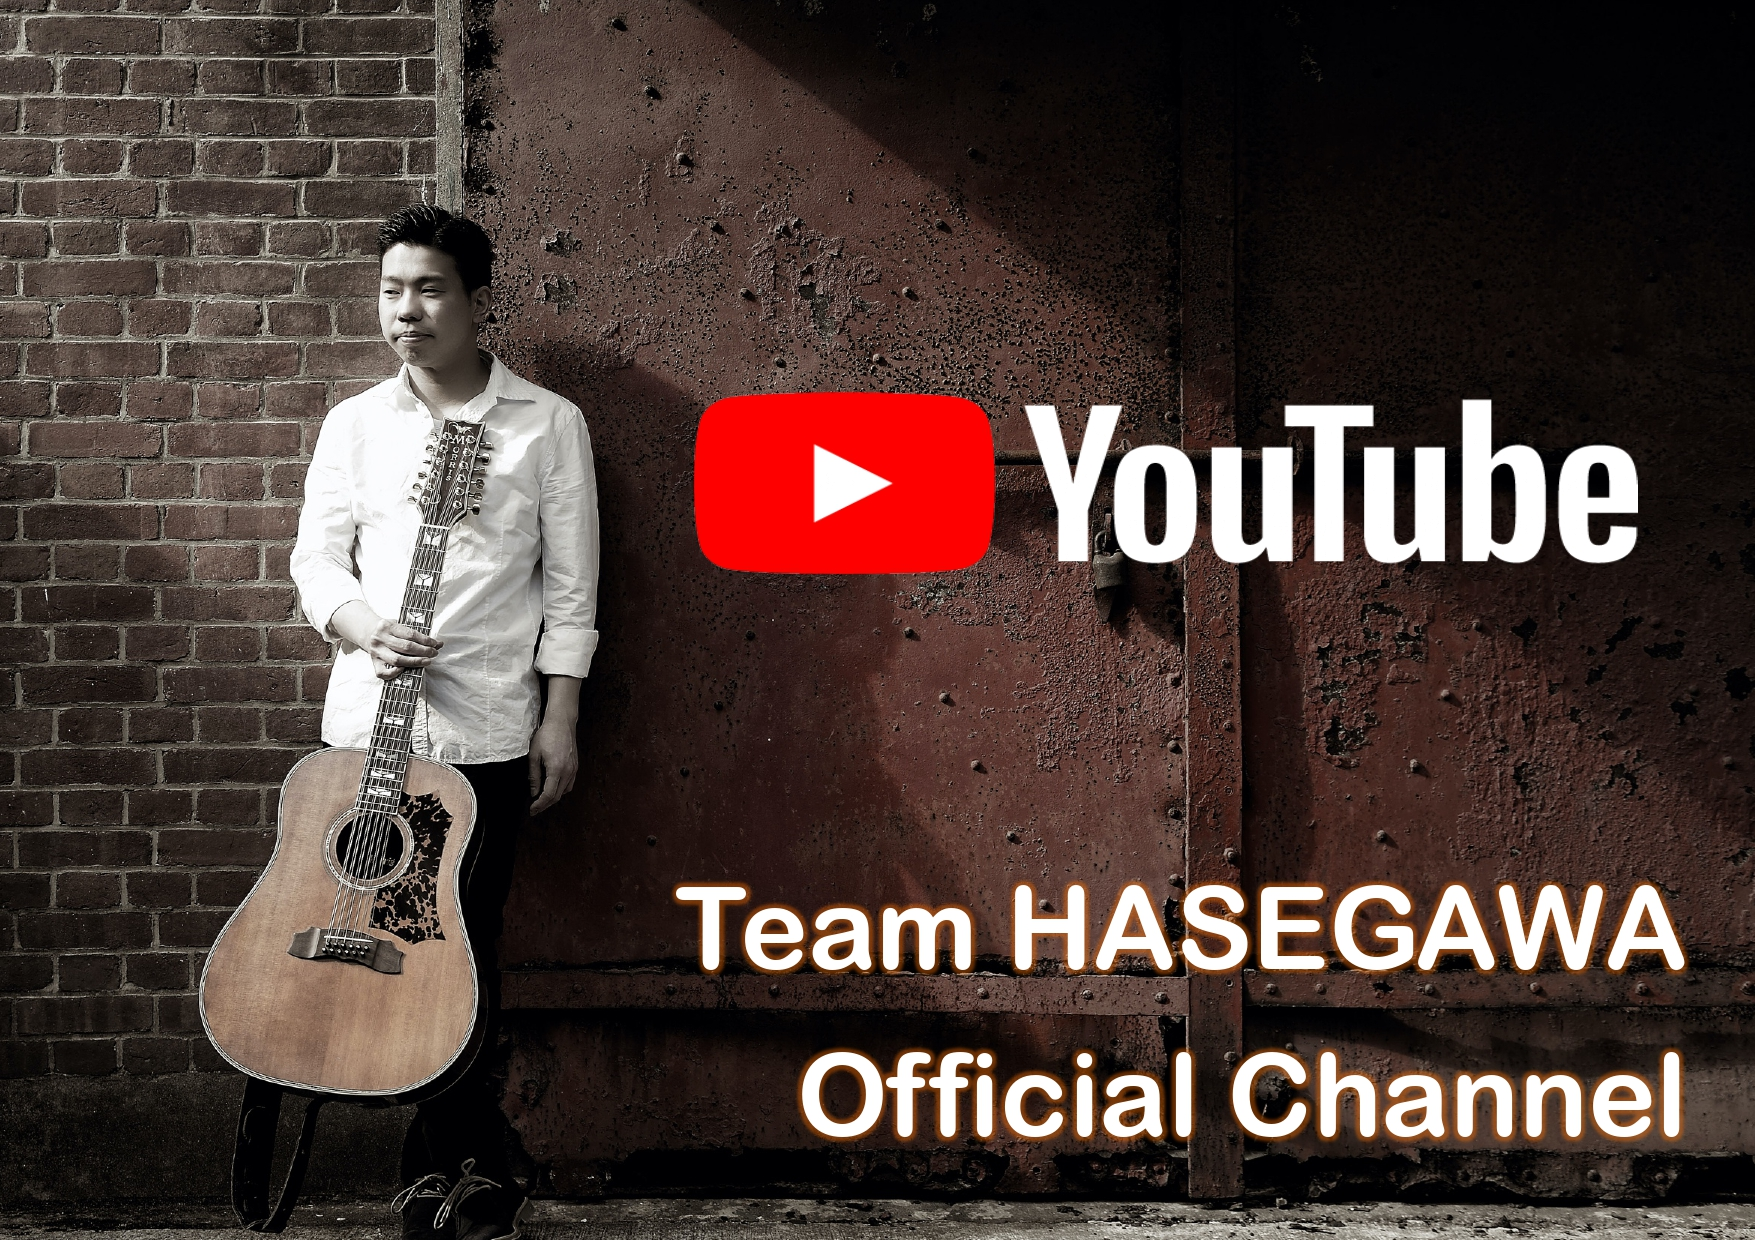 Team HASEGAWA Official Channel